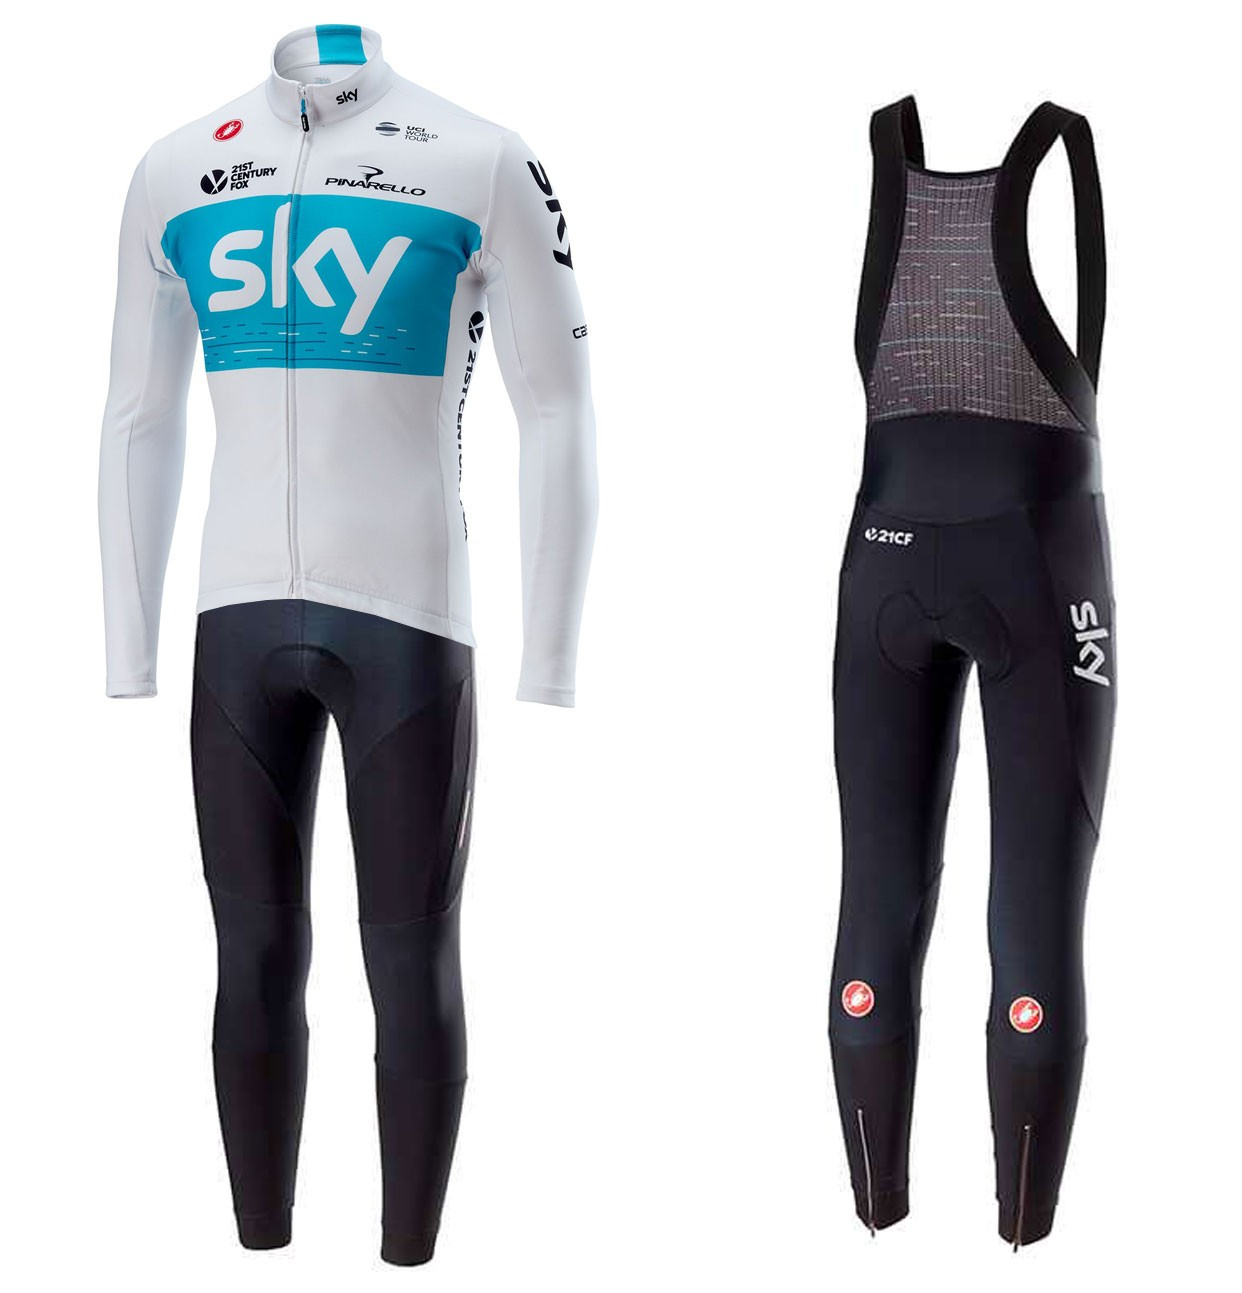 39d480b3d The most popular and cheap long cycling set - 2018 SKY Team White ...